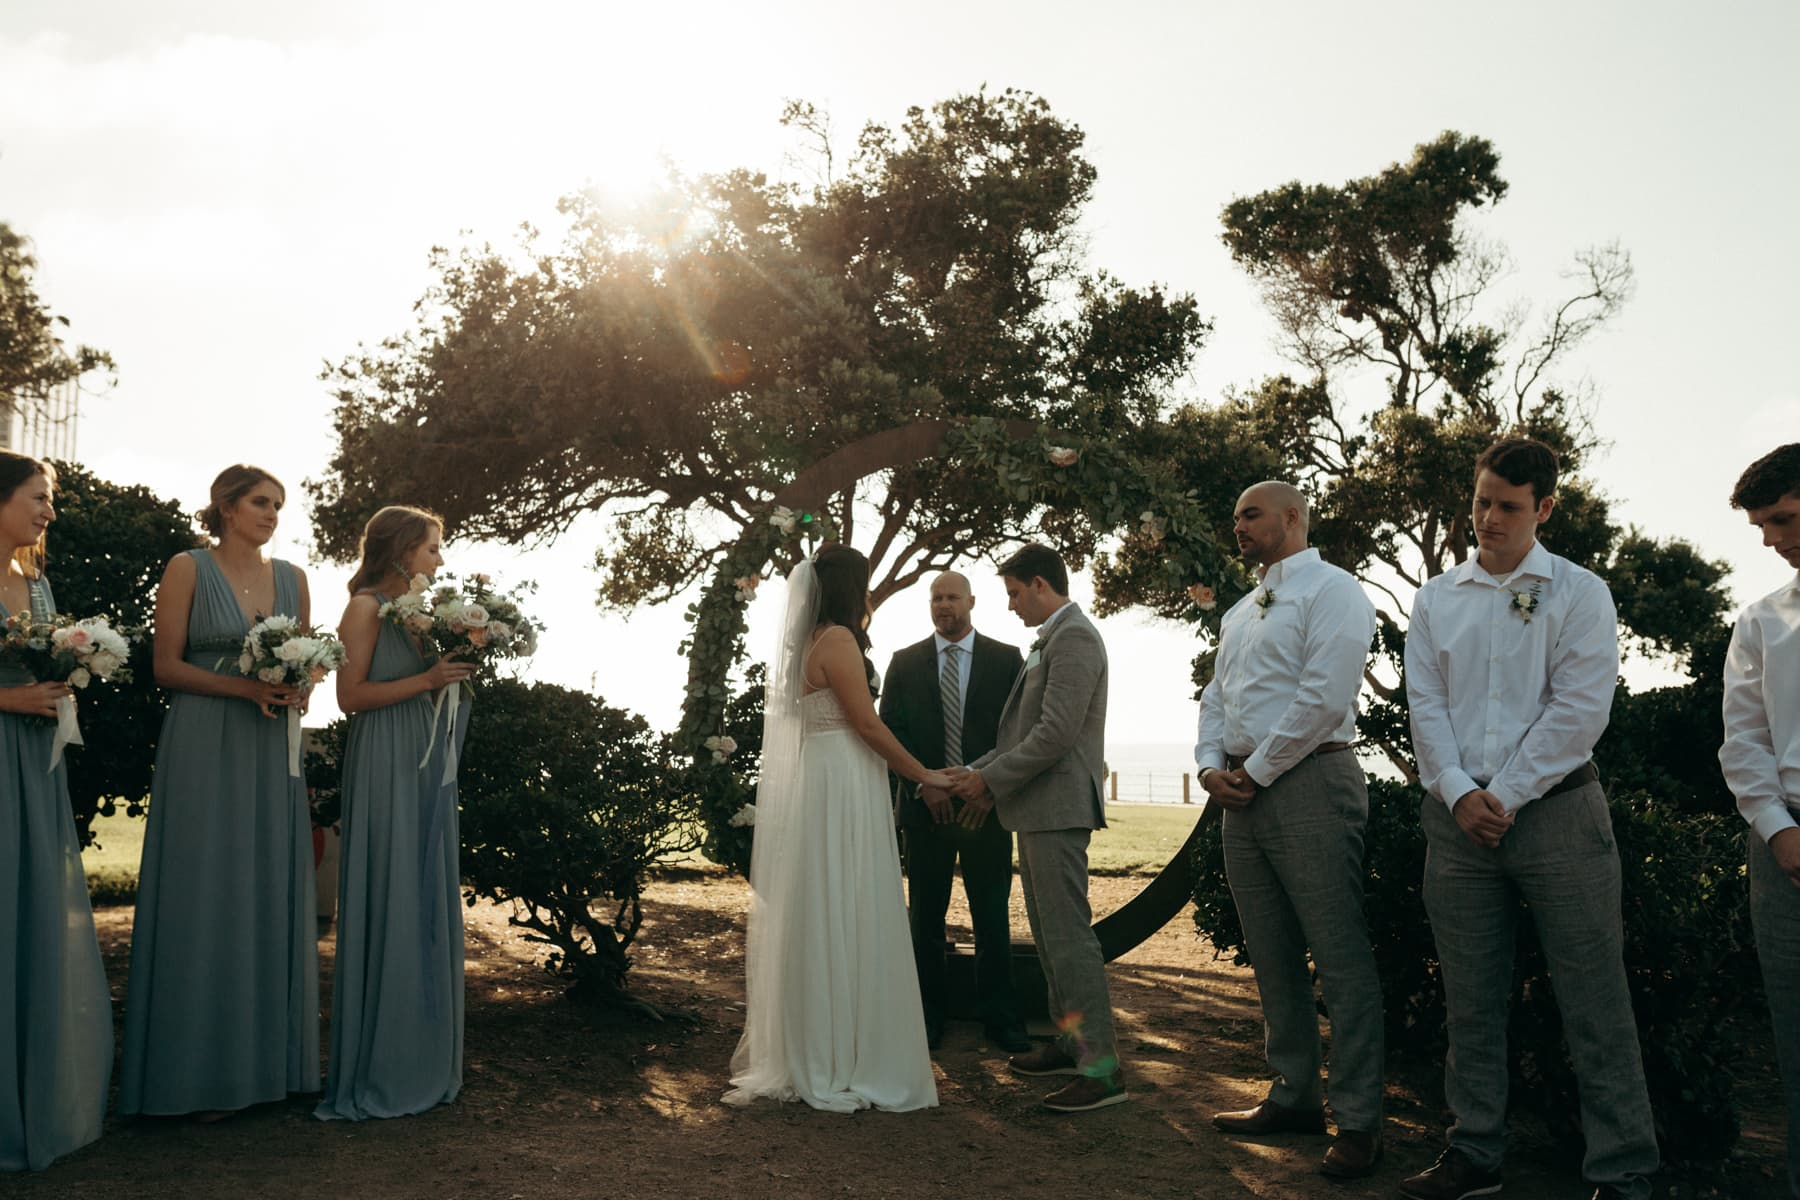 intimate wedding ceremony at ellen browning scripps park